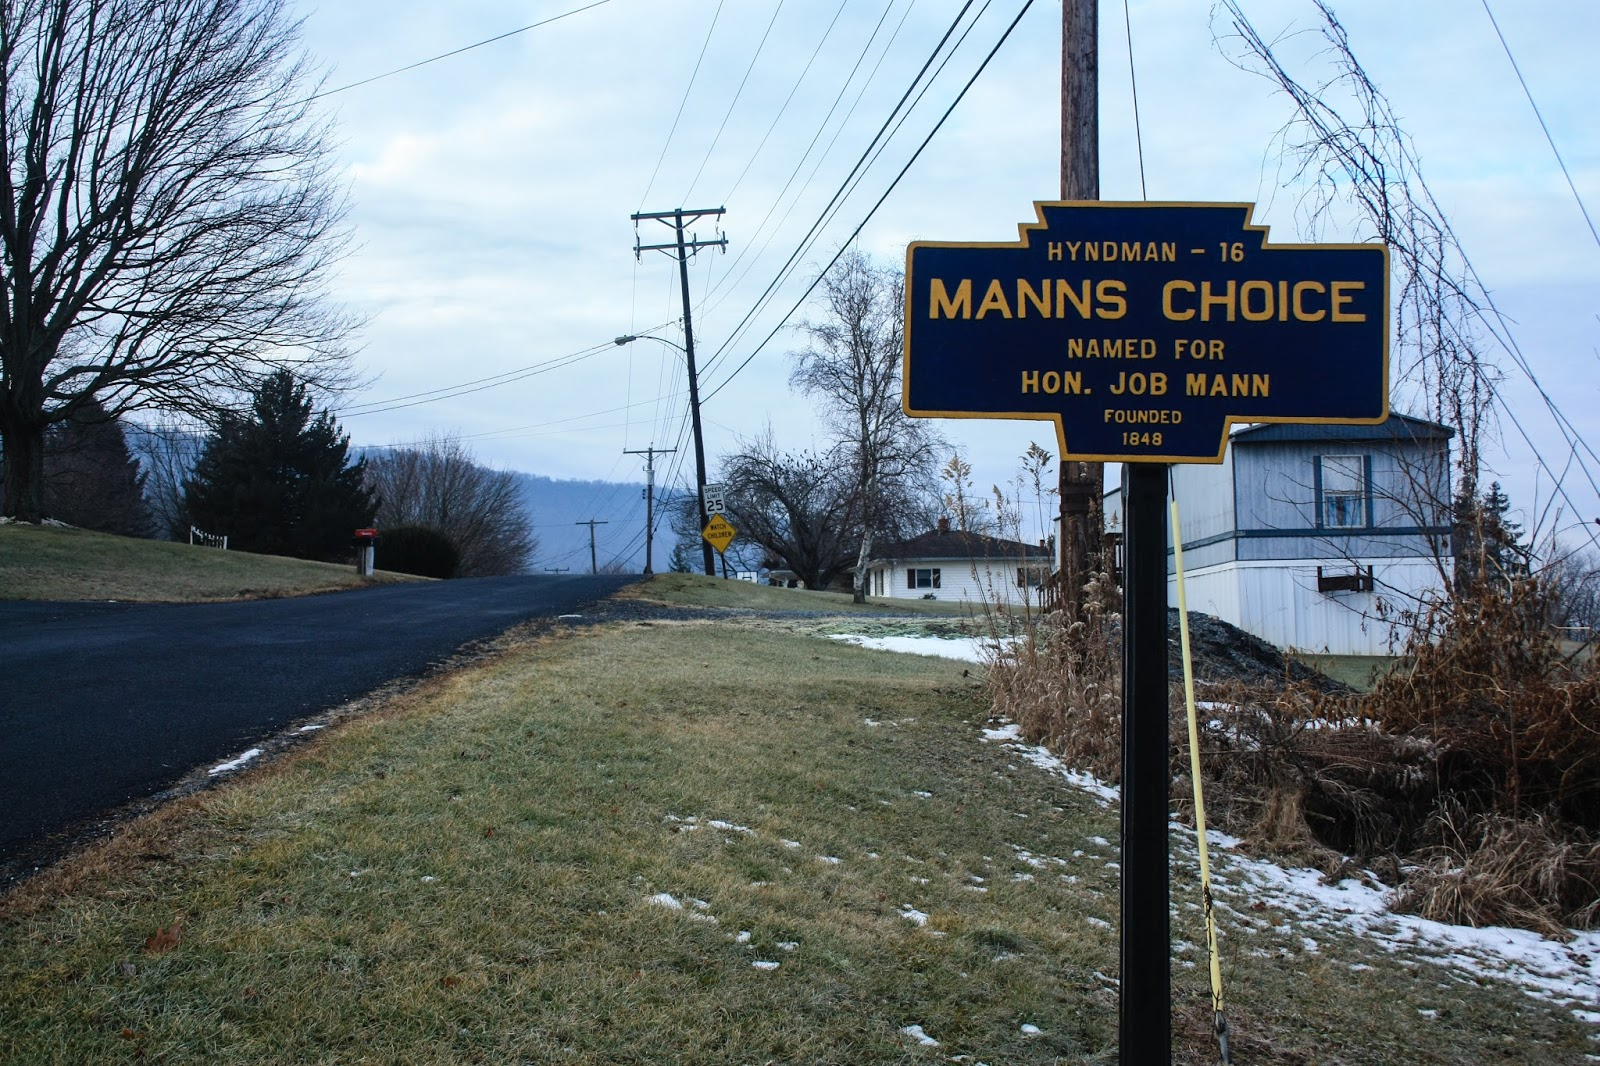 this bedford county town is named after job mann who served as a united states congressman from 1835 1837 and 1847 1851 in 1848 mann lobbied for the